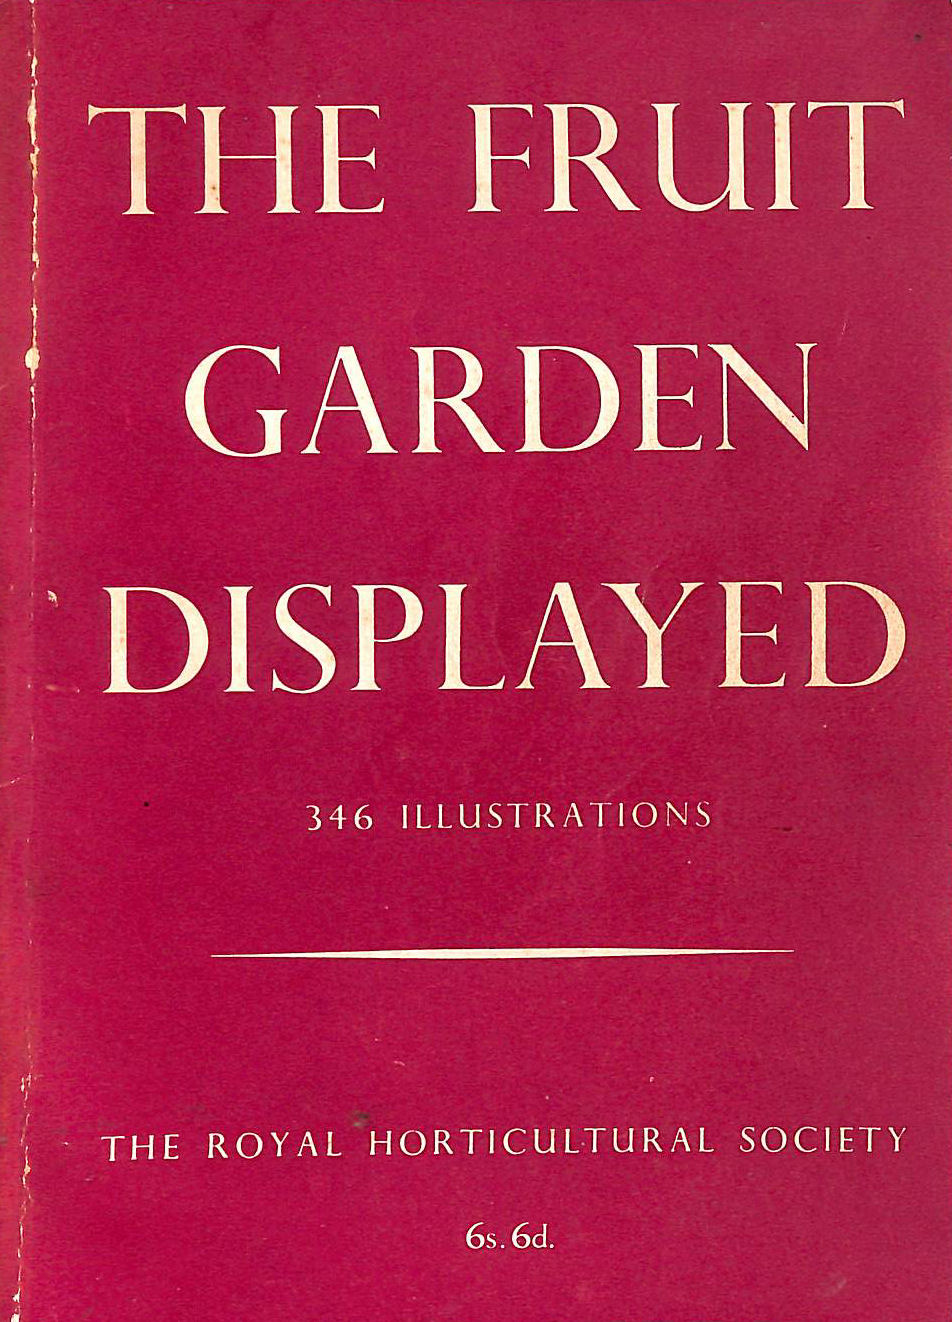 Image for The Fruit Garden Displayed